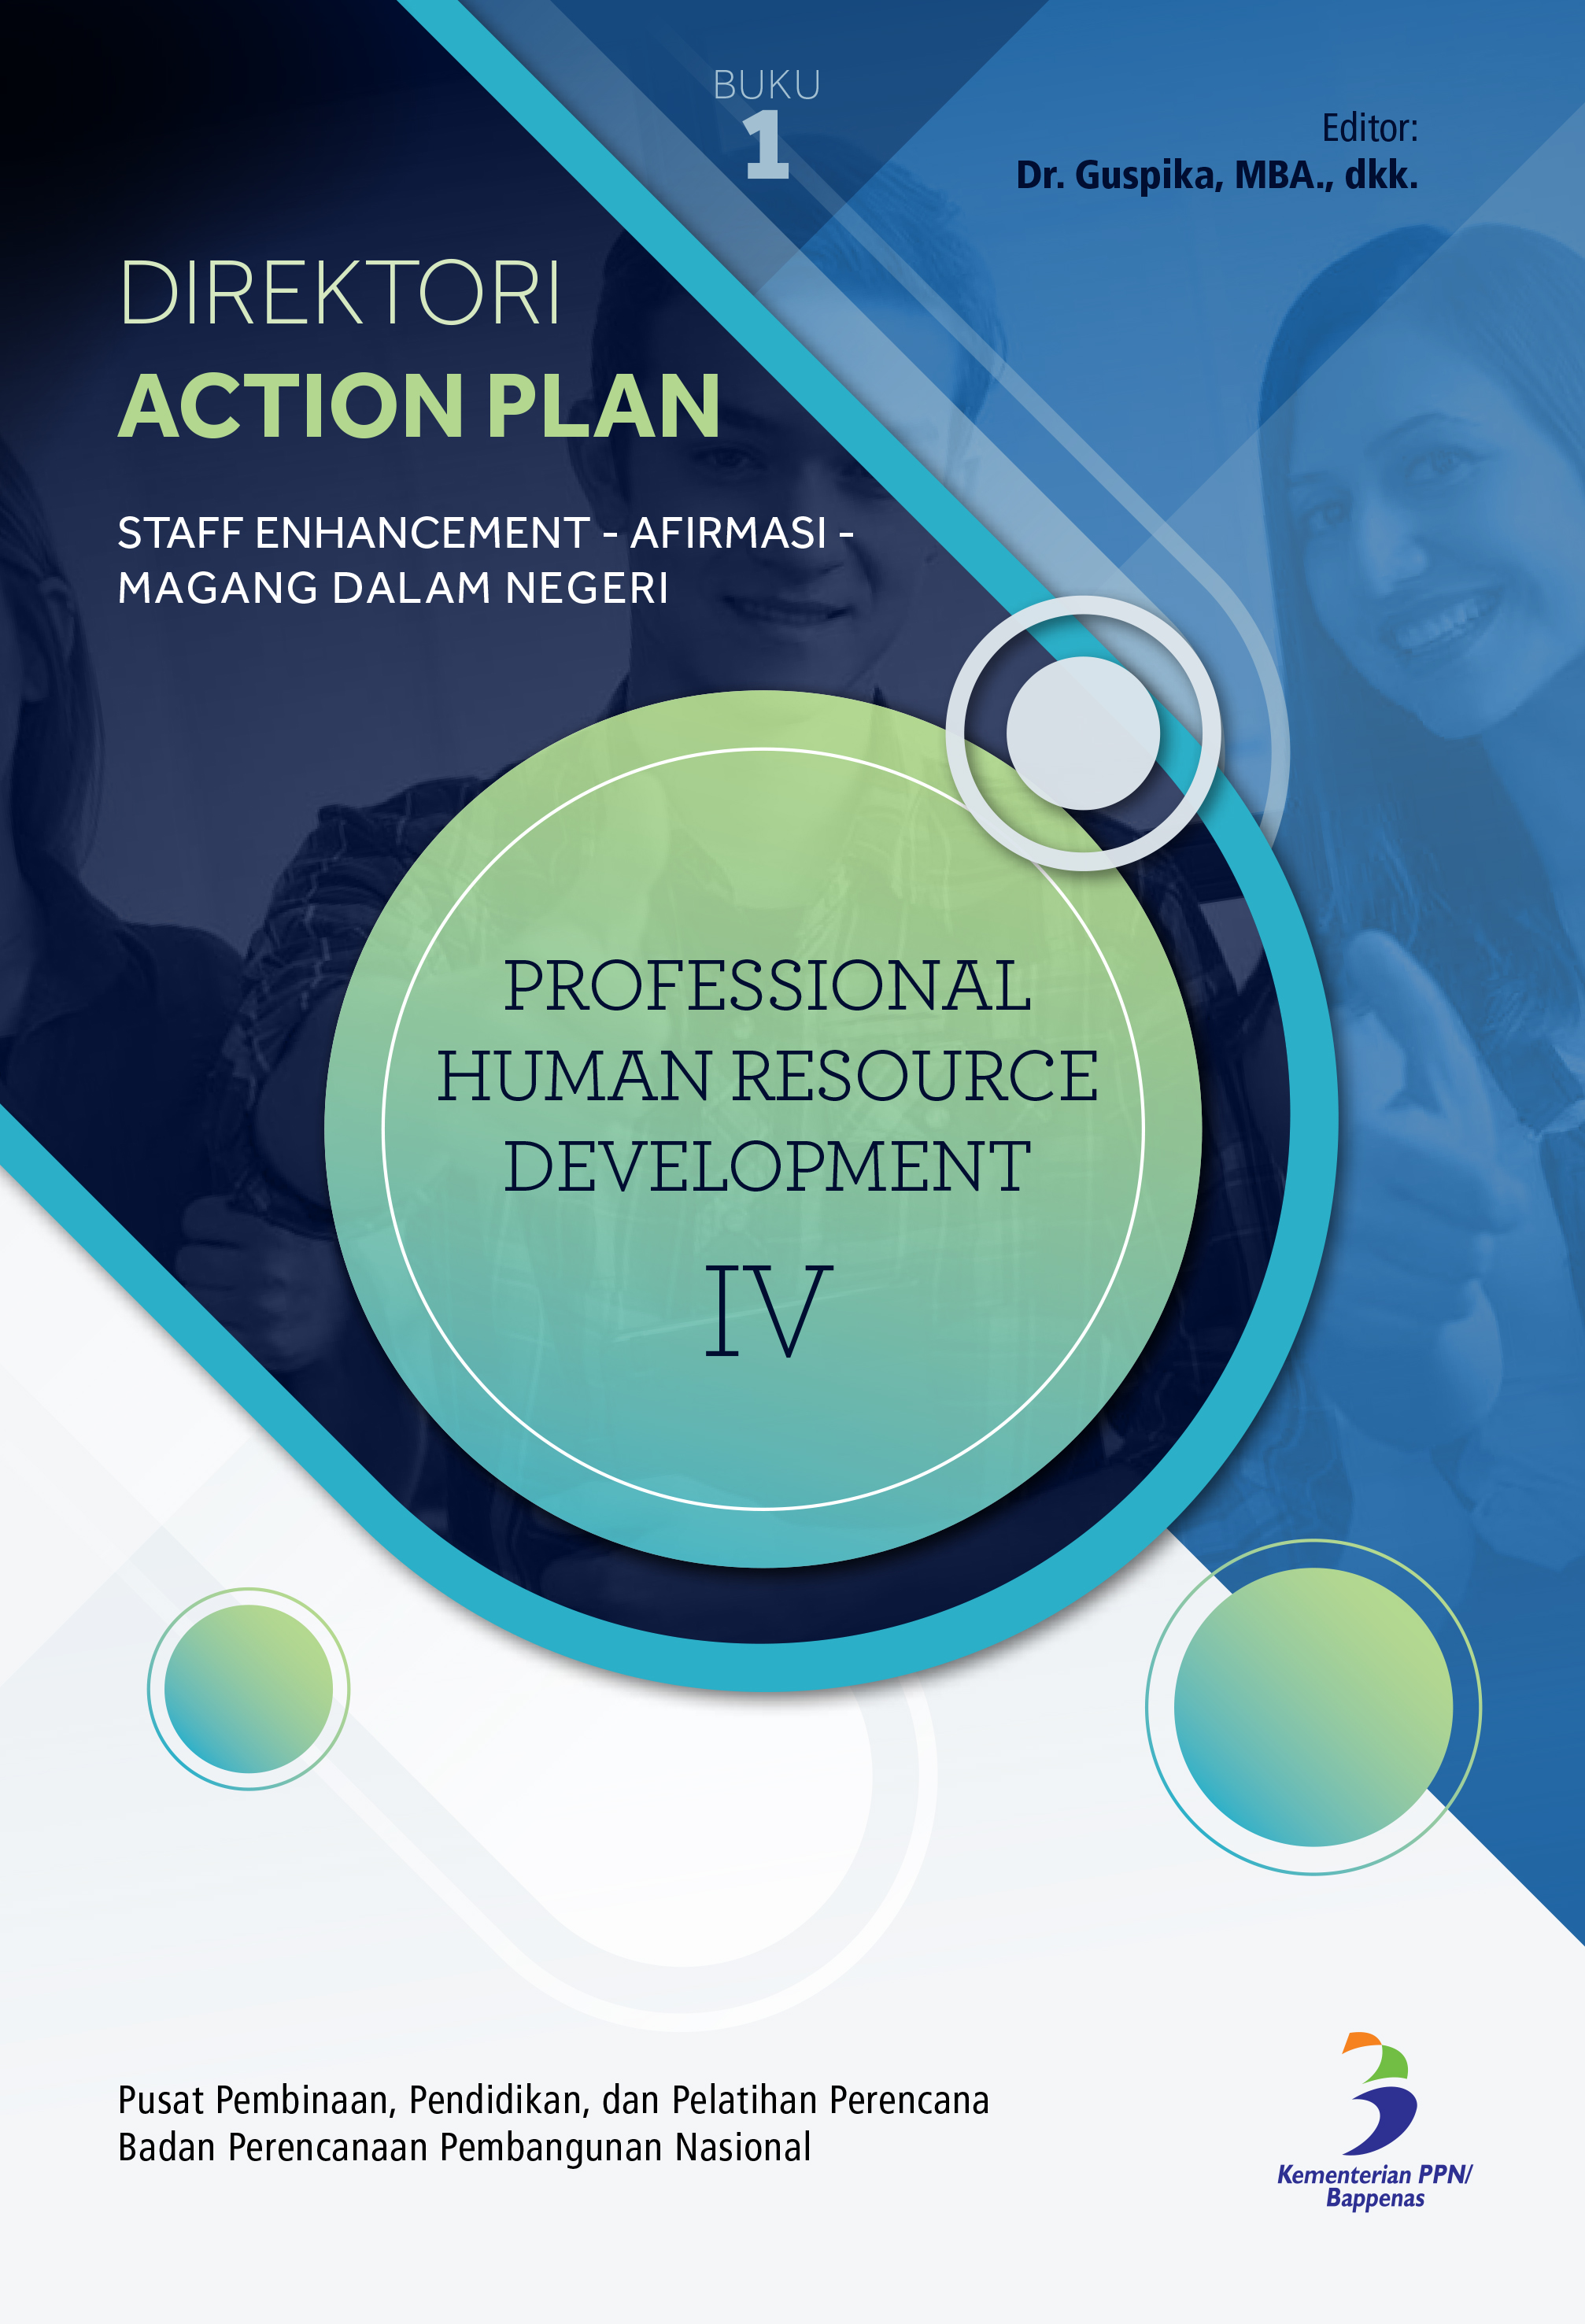 Buku 1 - Direktori Action Plan Program Pelatihan PHRD IV